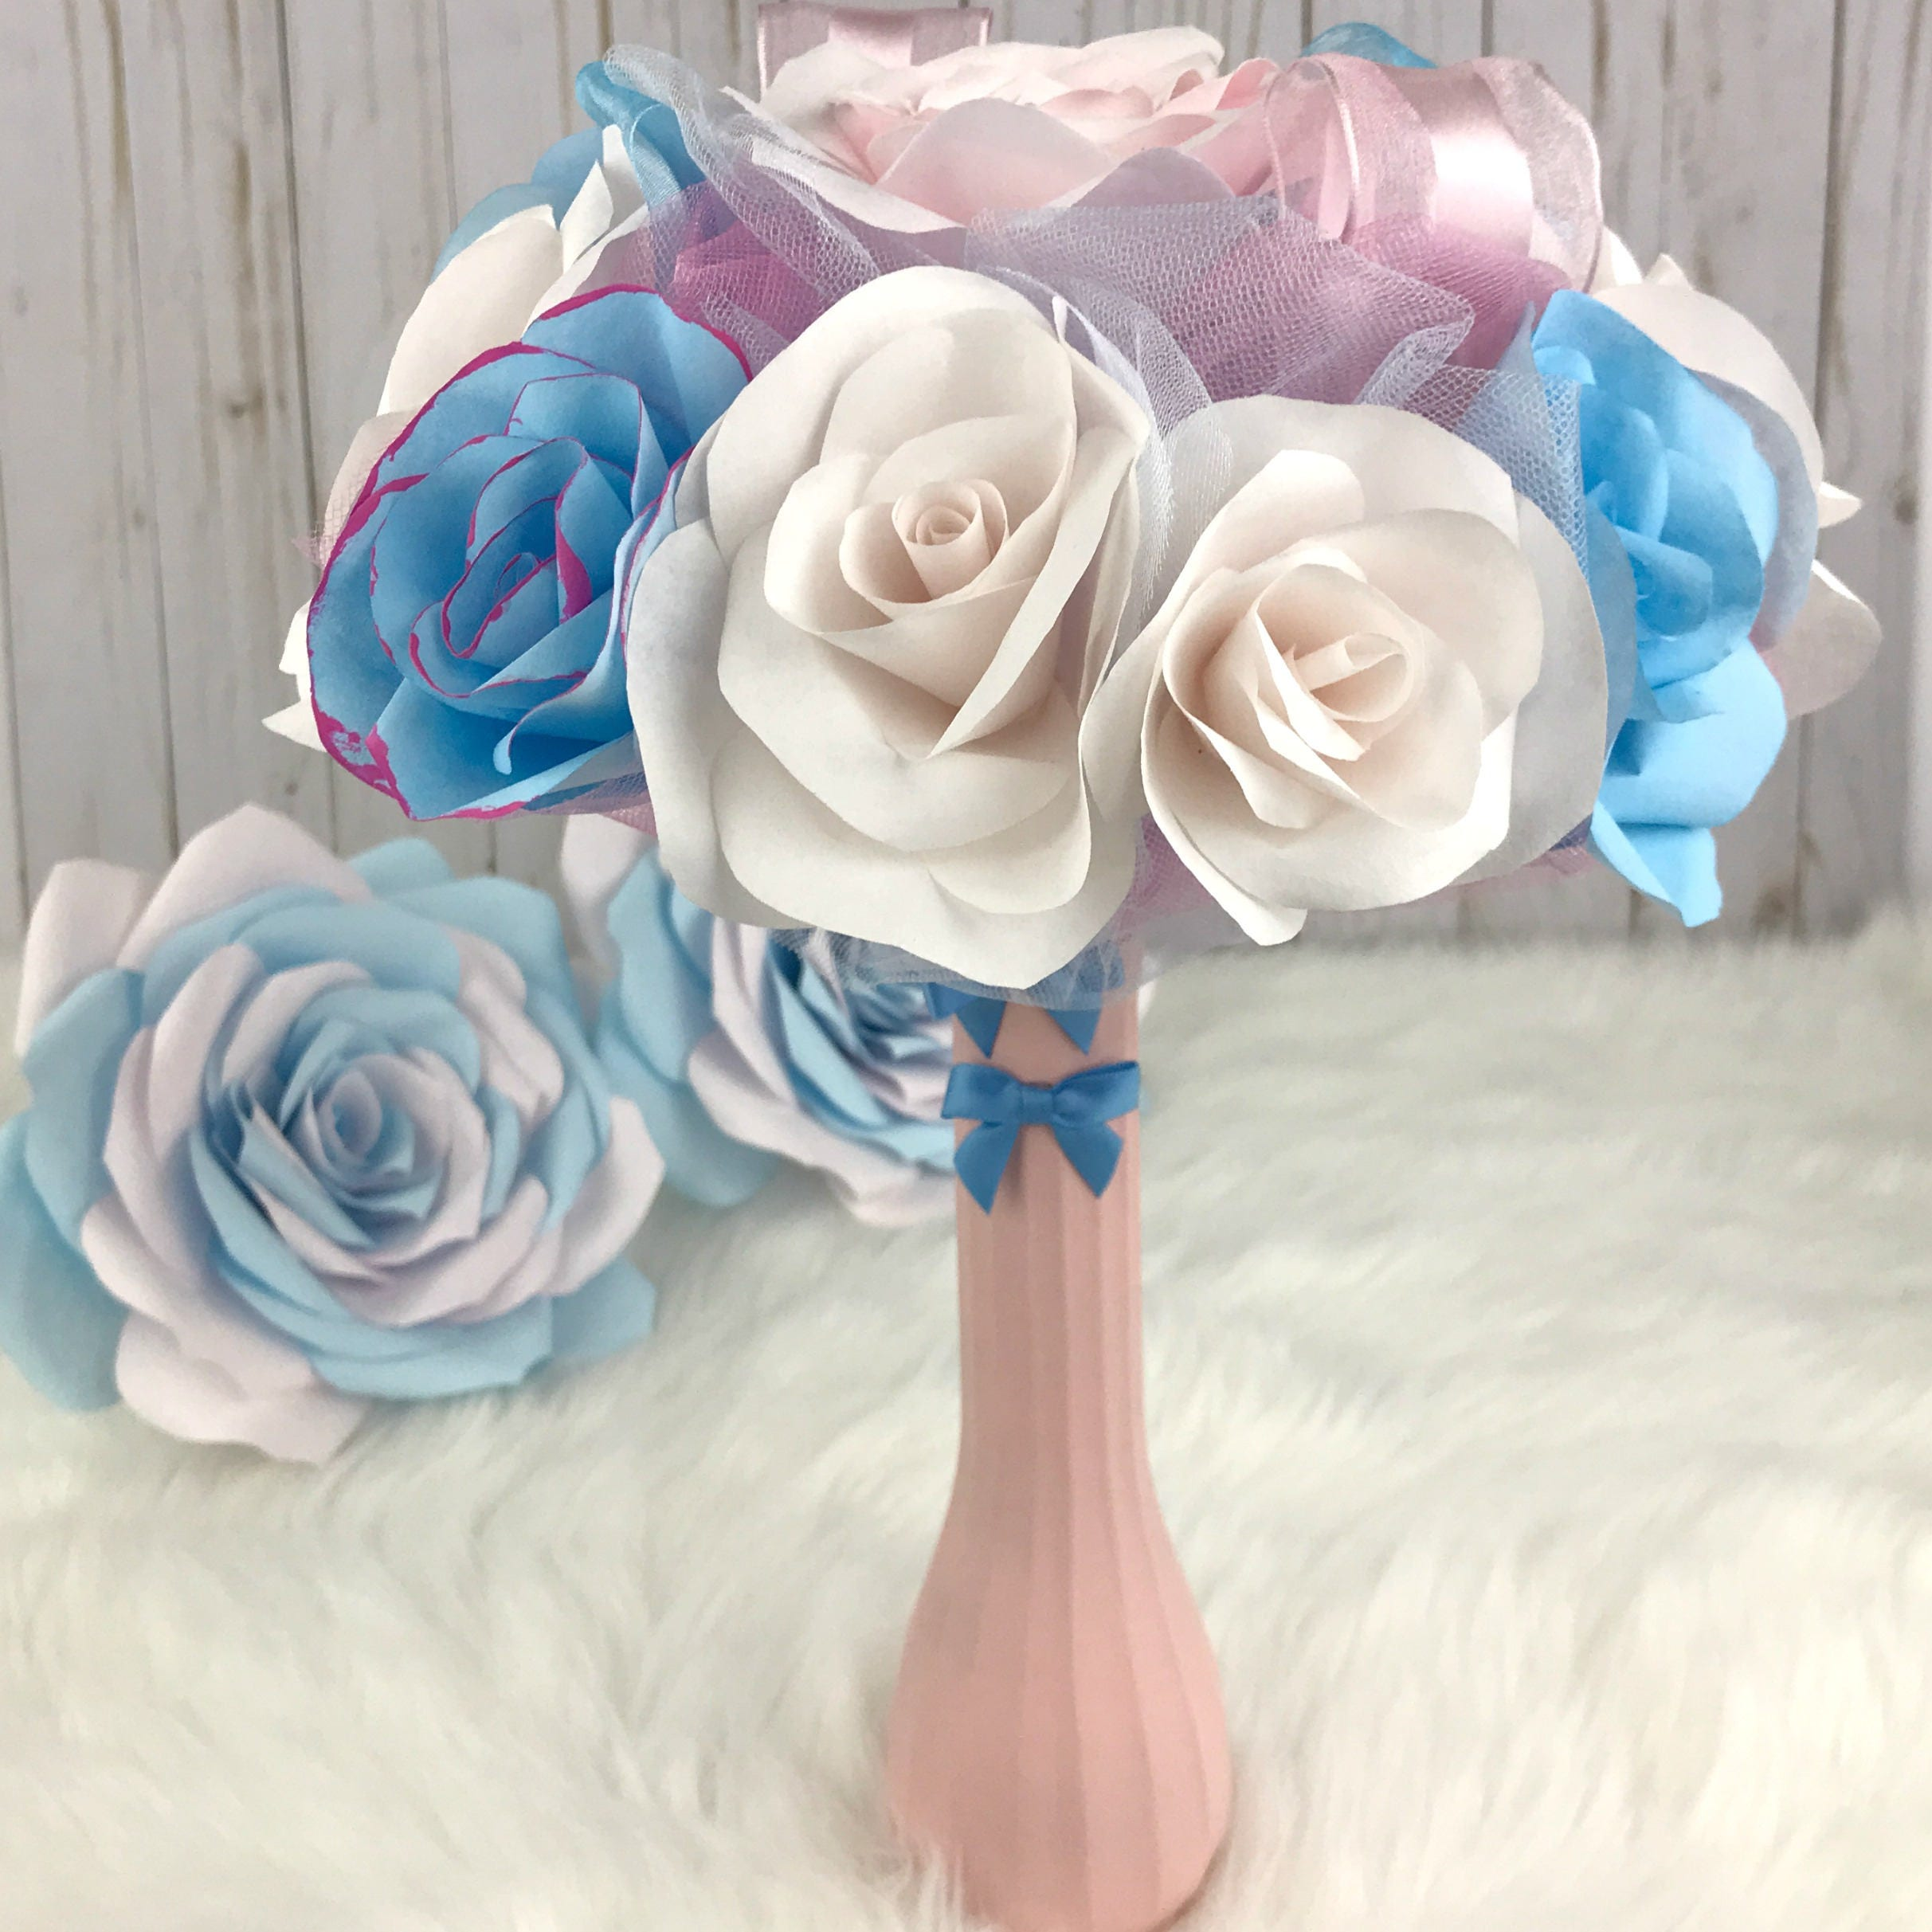 Gender Reveal Decorations Pink And Blue Decor Baby Shower Decor